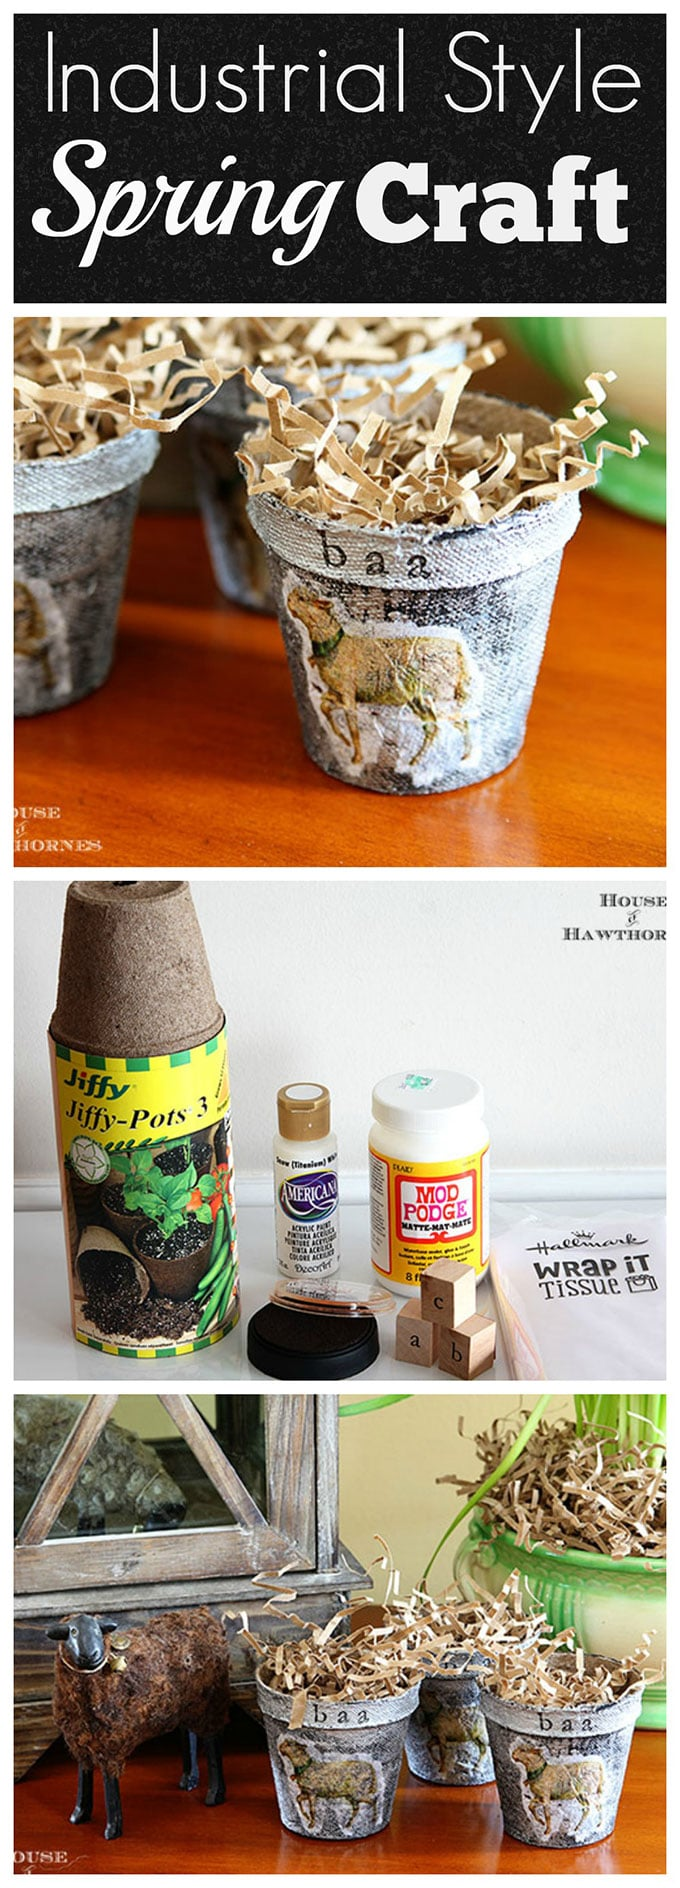 Make cute little DIY mini Easter baskets with an industrial style using peat pots from the garden. Super easy and quick to make.